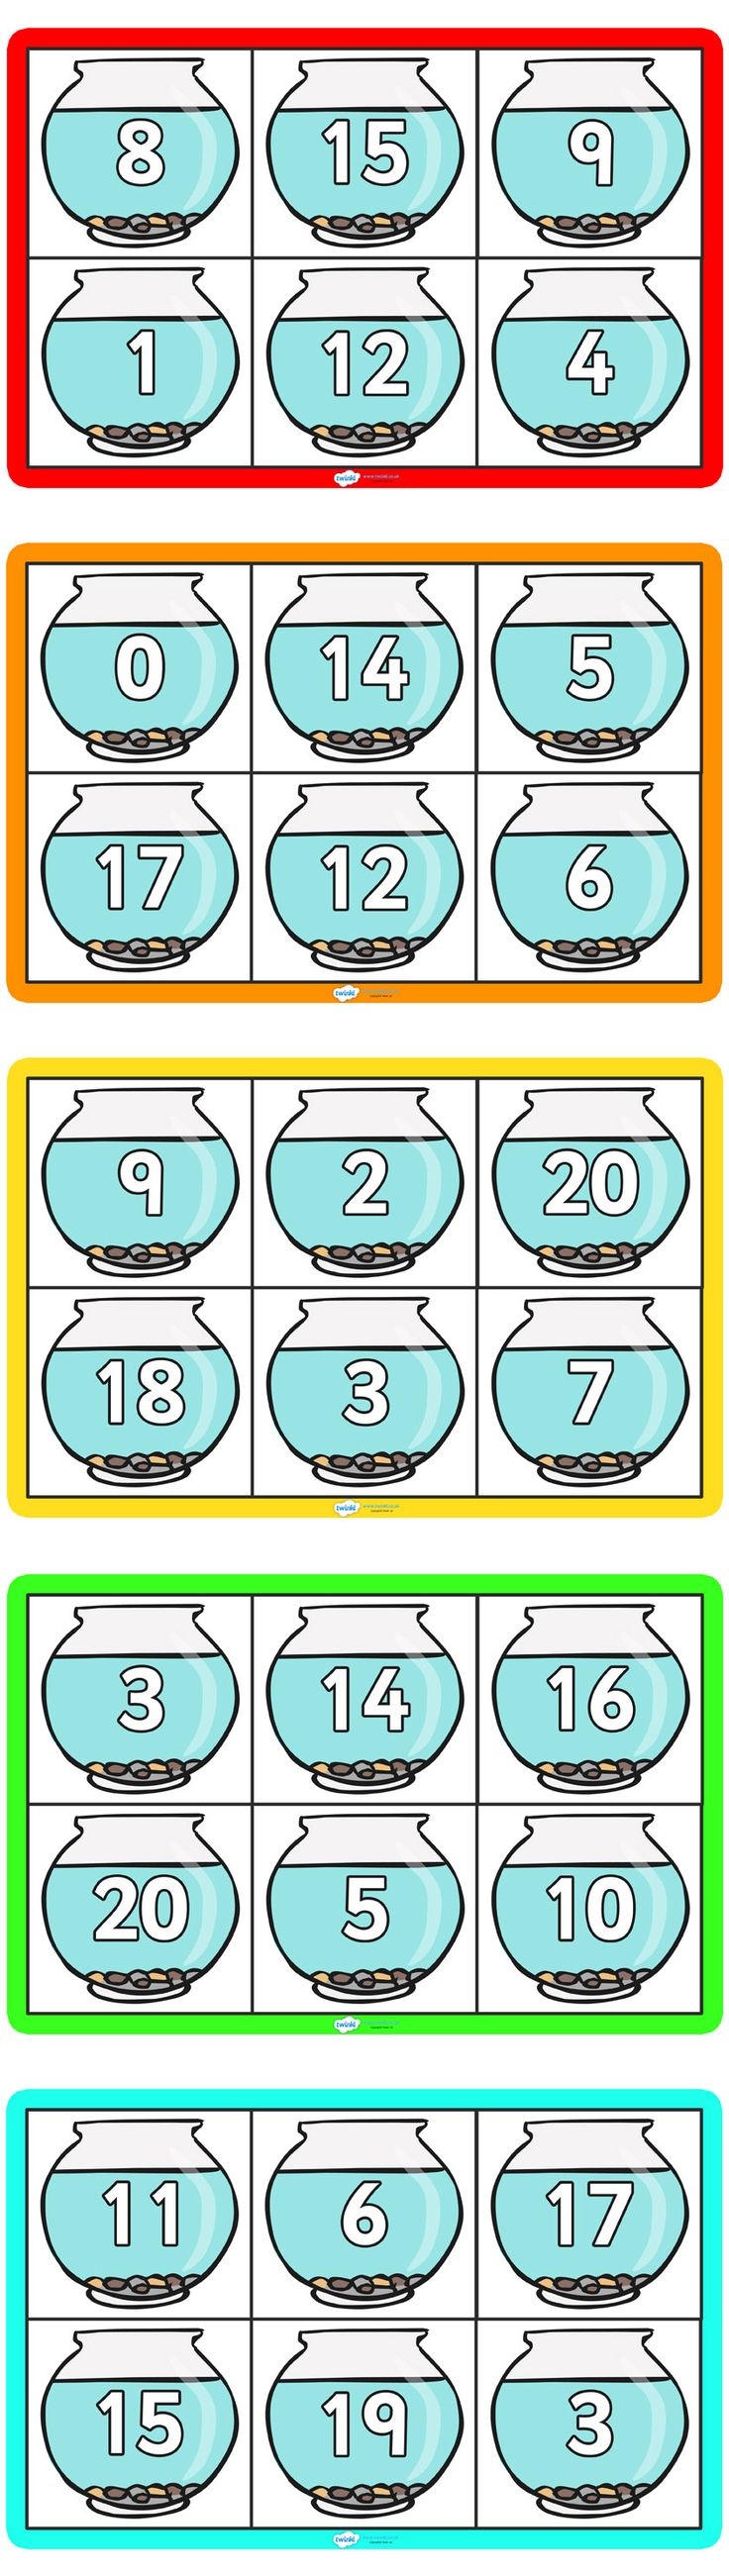 Twinkl Resources >> Number Bonds To 20 >> Thousands of printable primary teaching resources for EYFS, KS1, KS2 and beyond! number bonds, counting to twenty, adding to ten, bingo, counting,